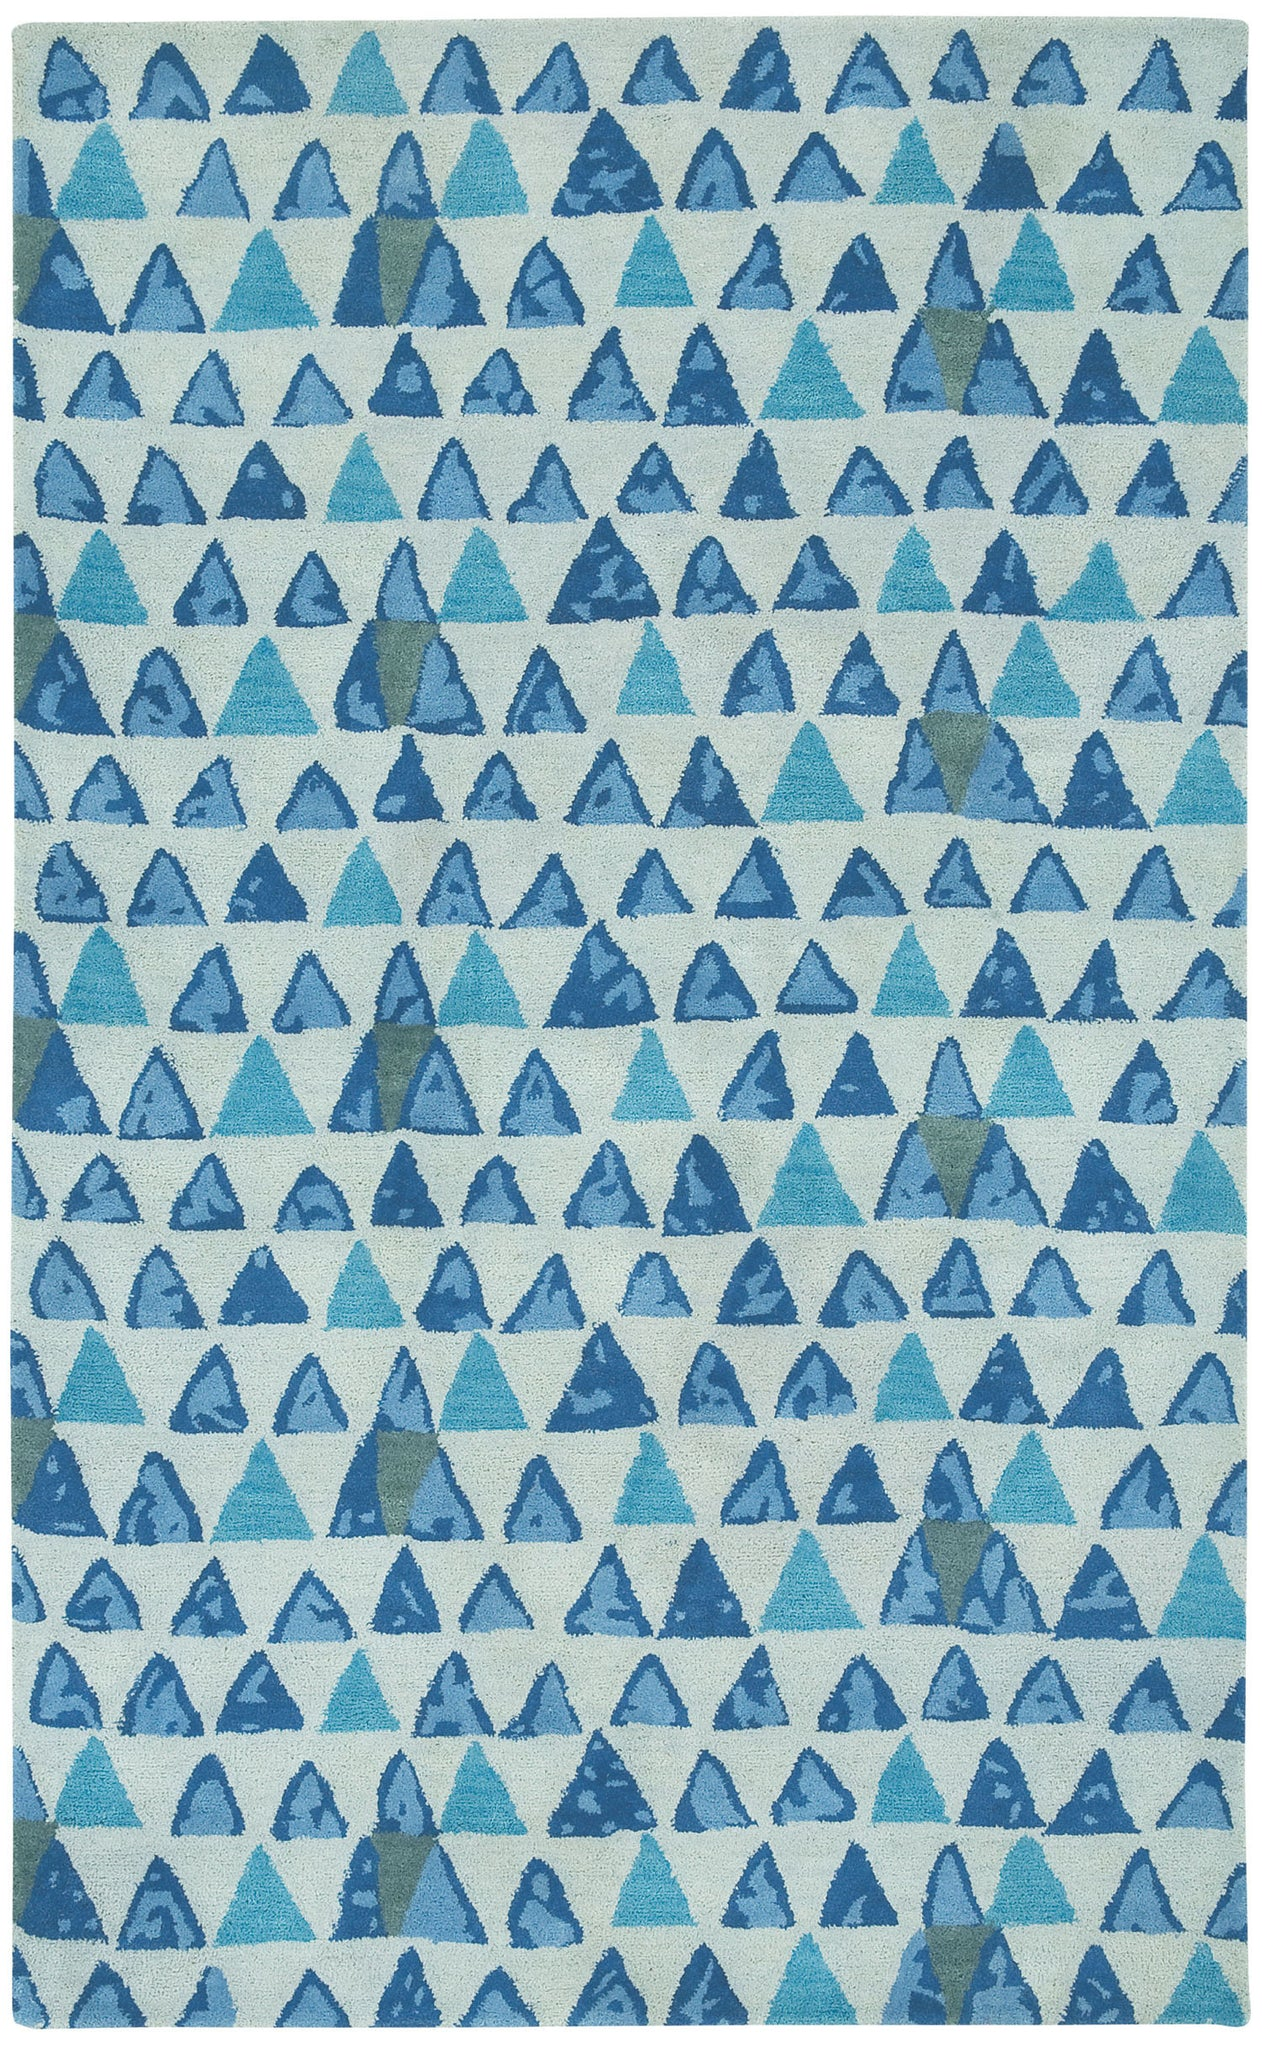 Capel Charisma Pyramid 3123 Blue 425 Area Rug main image